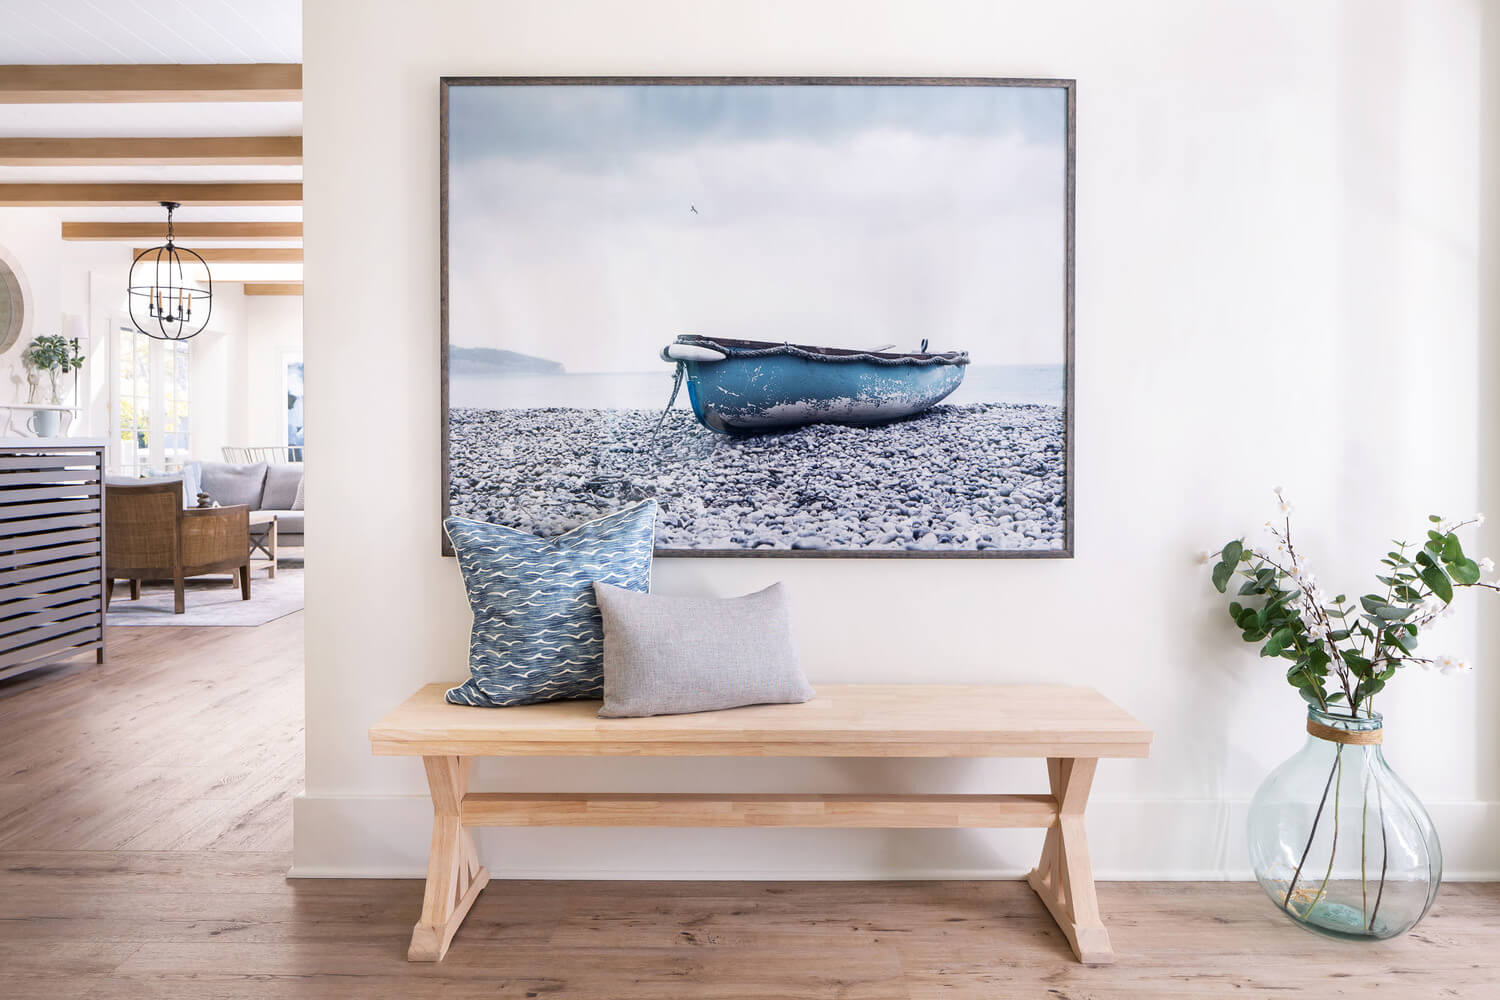 entryway with picture of boat and a plant in a large vase